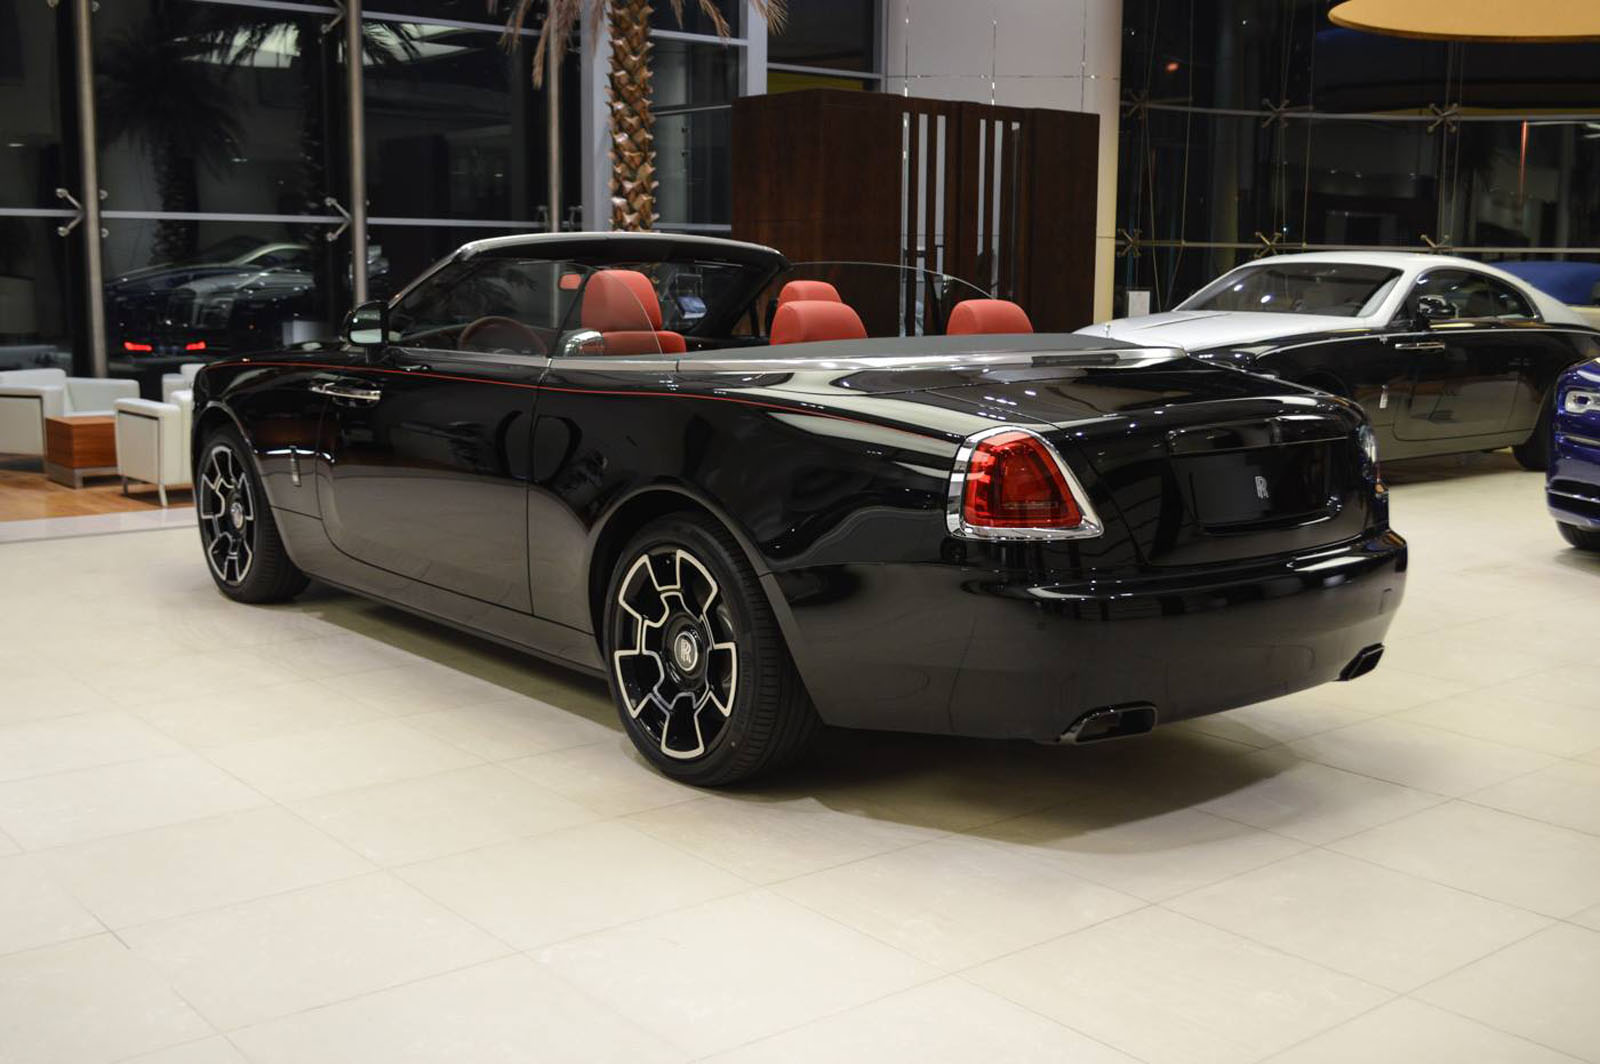 BMW European Delivery >> This Rolls Royce Dawn Black Badge is the young enthusiasts ...